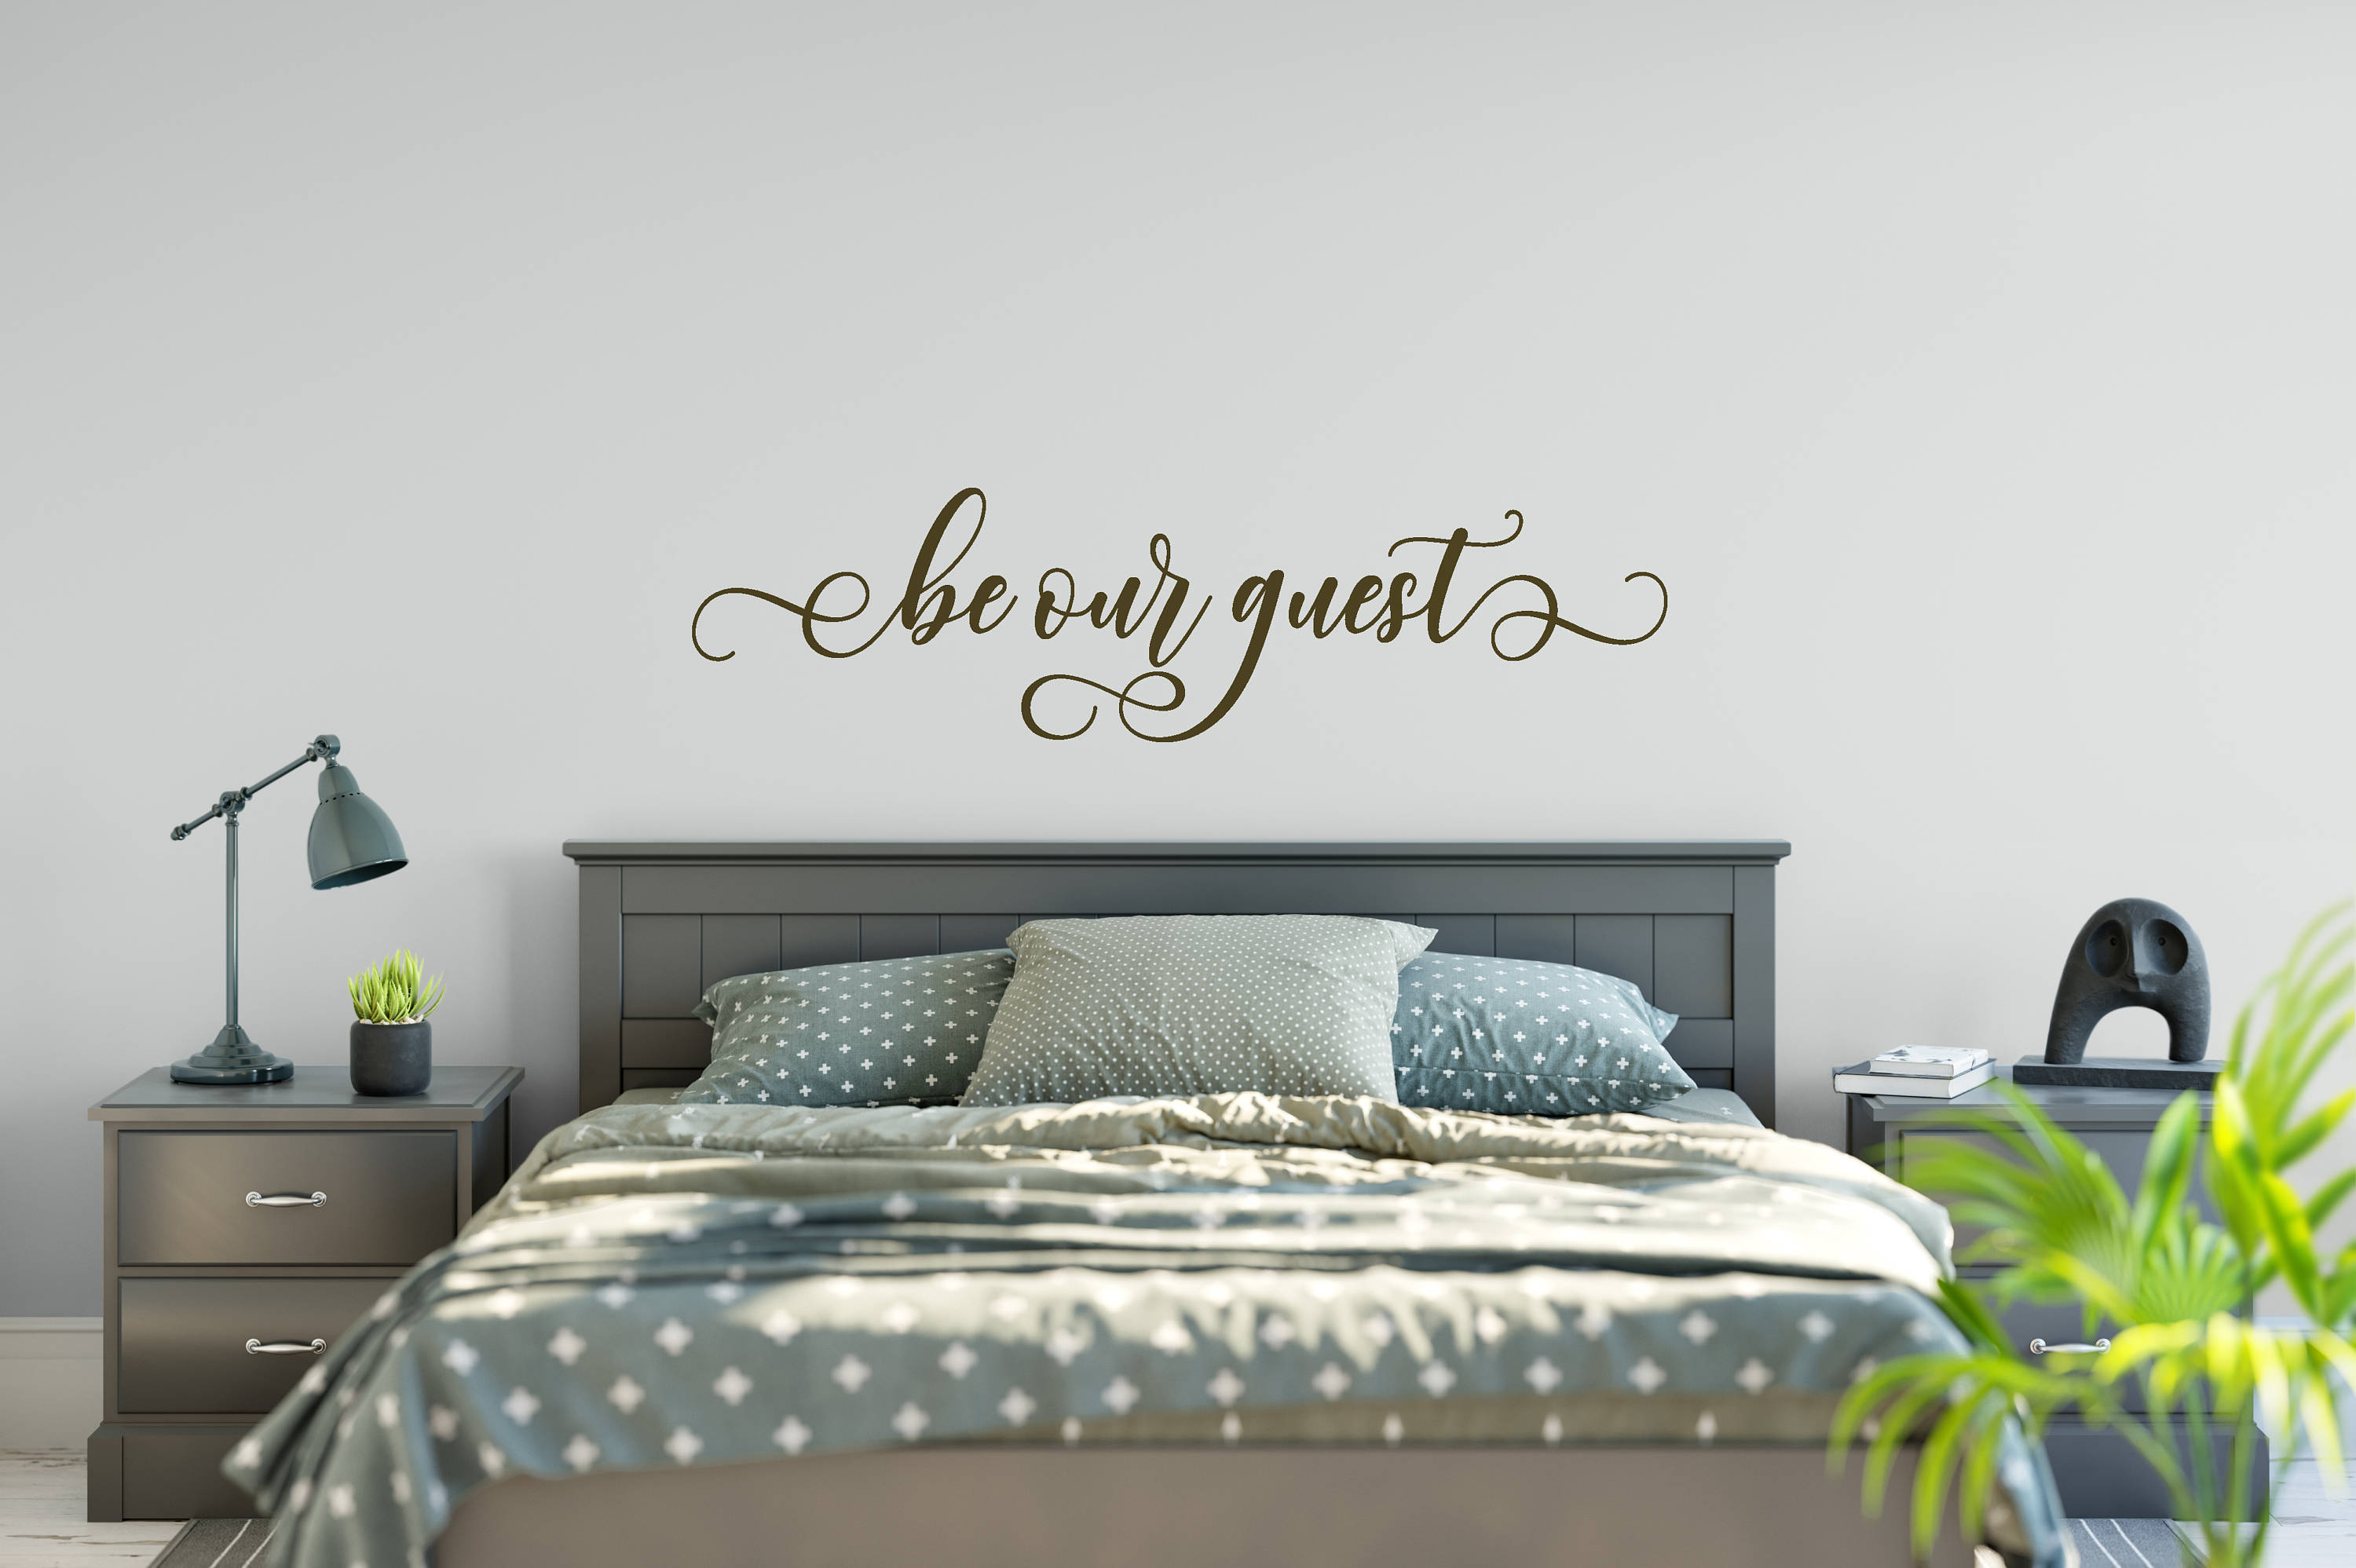 Be Our Guest Decal Wall Words Vinyl Lettering Bedroom Decor quote ...